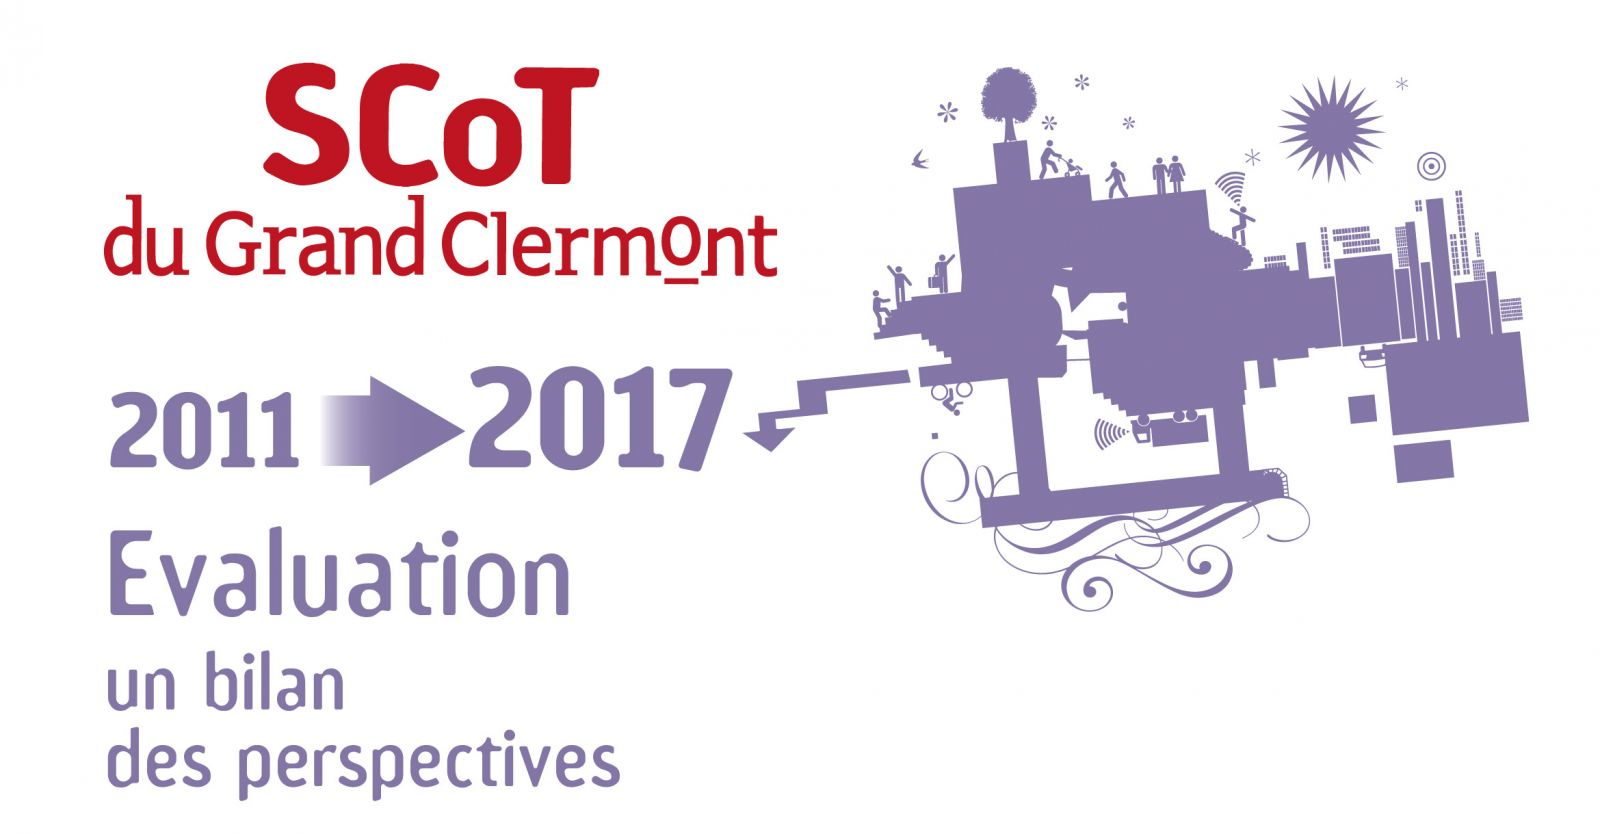 scot du grand clermont évaluation 2011 - 2017